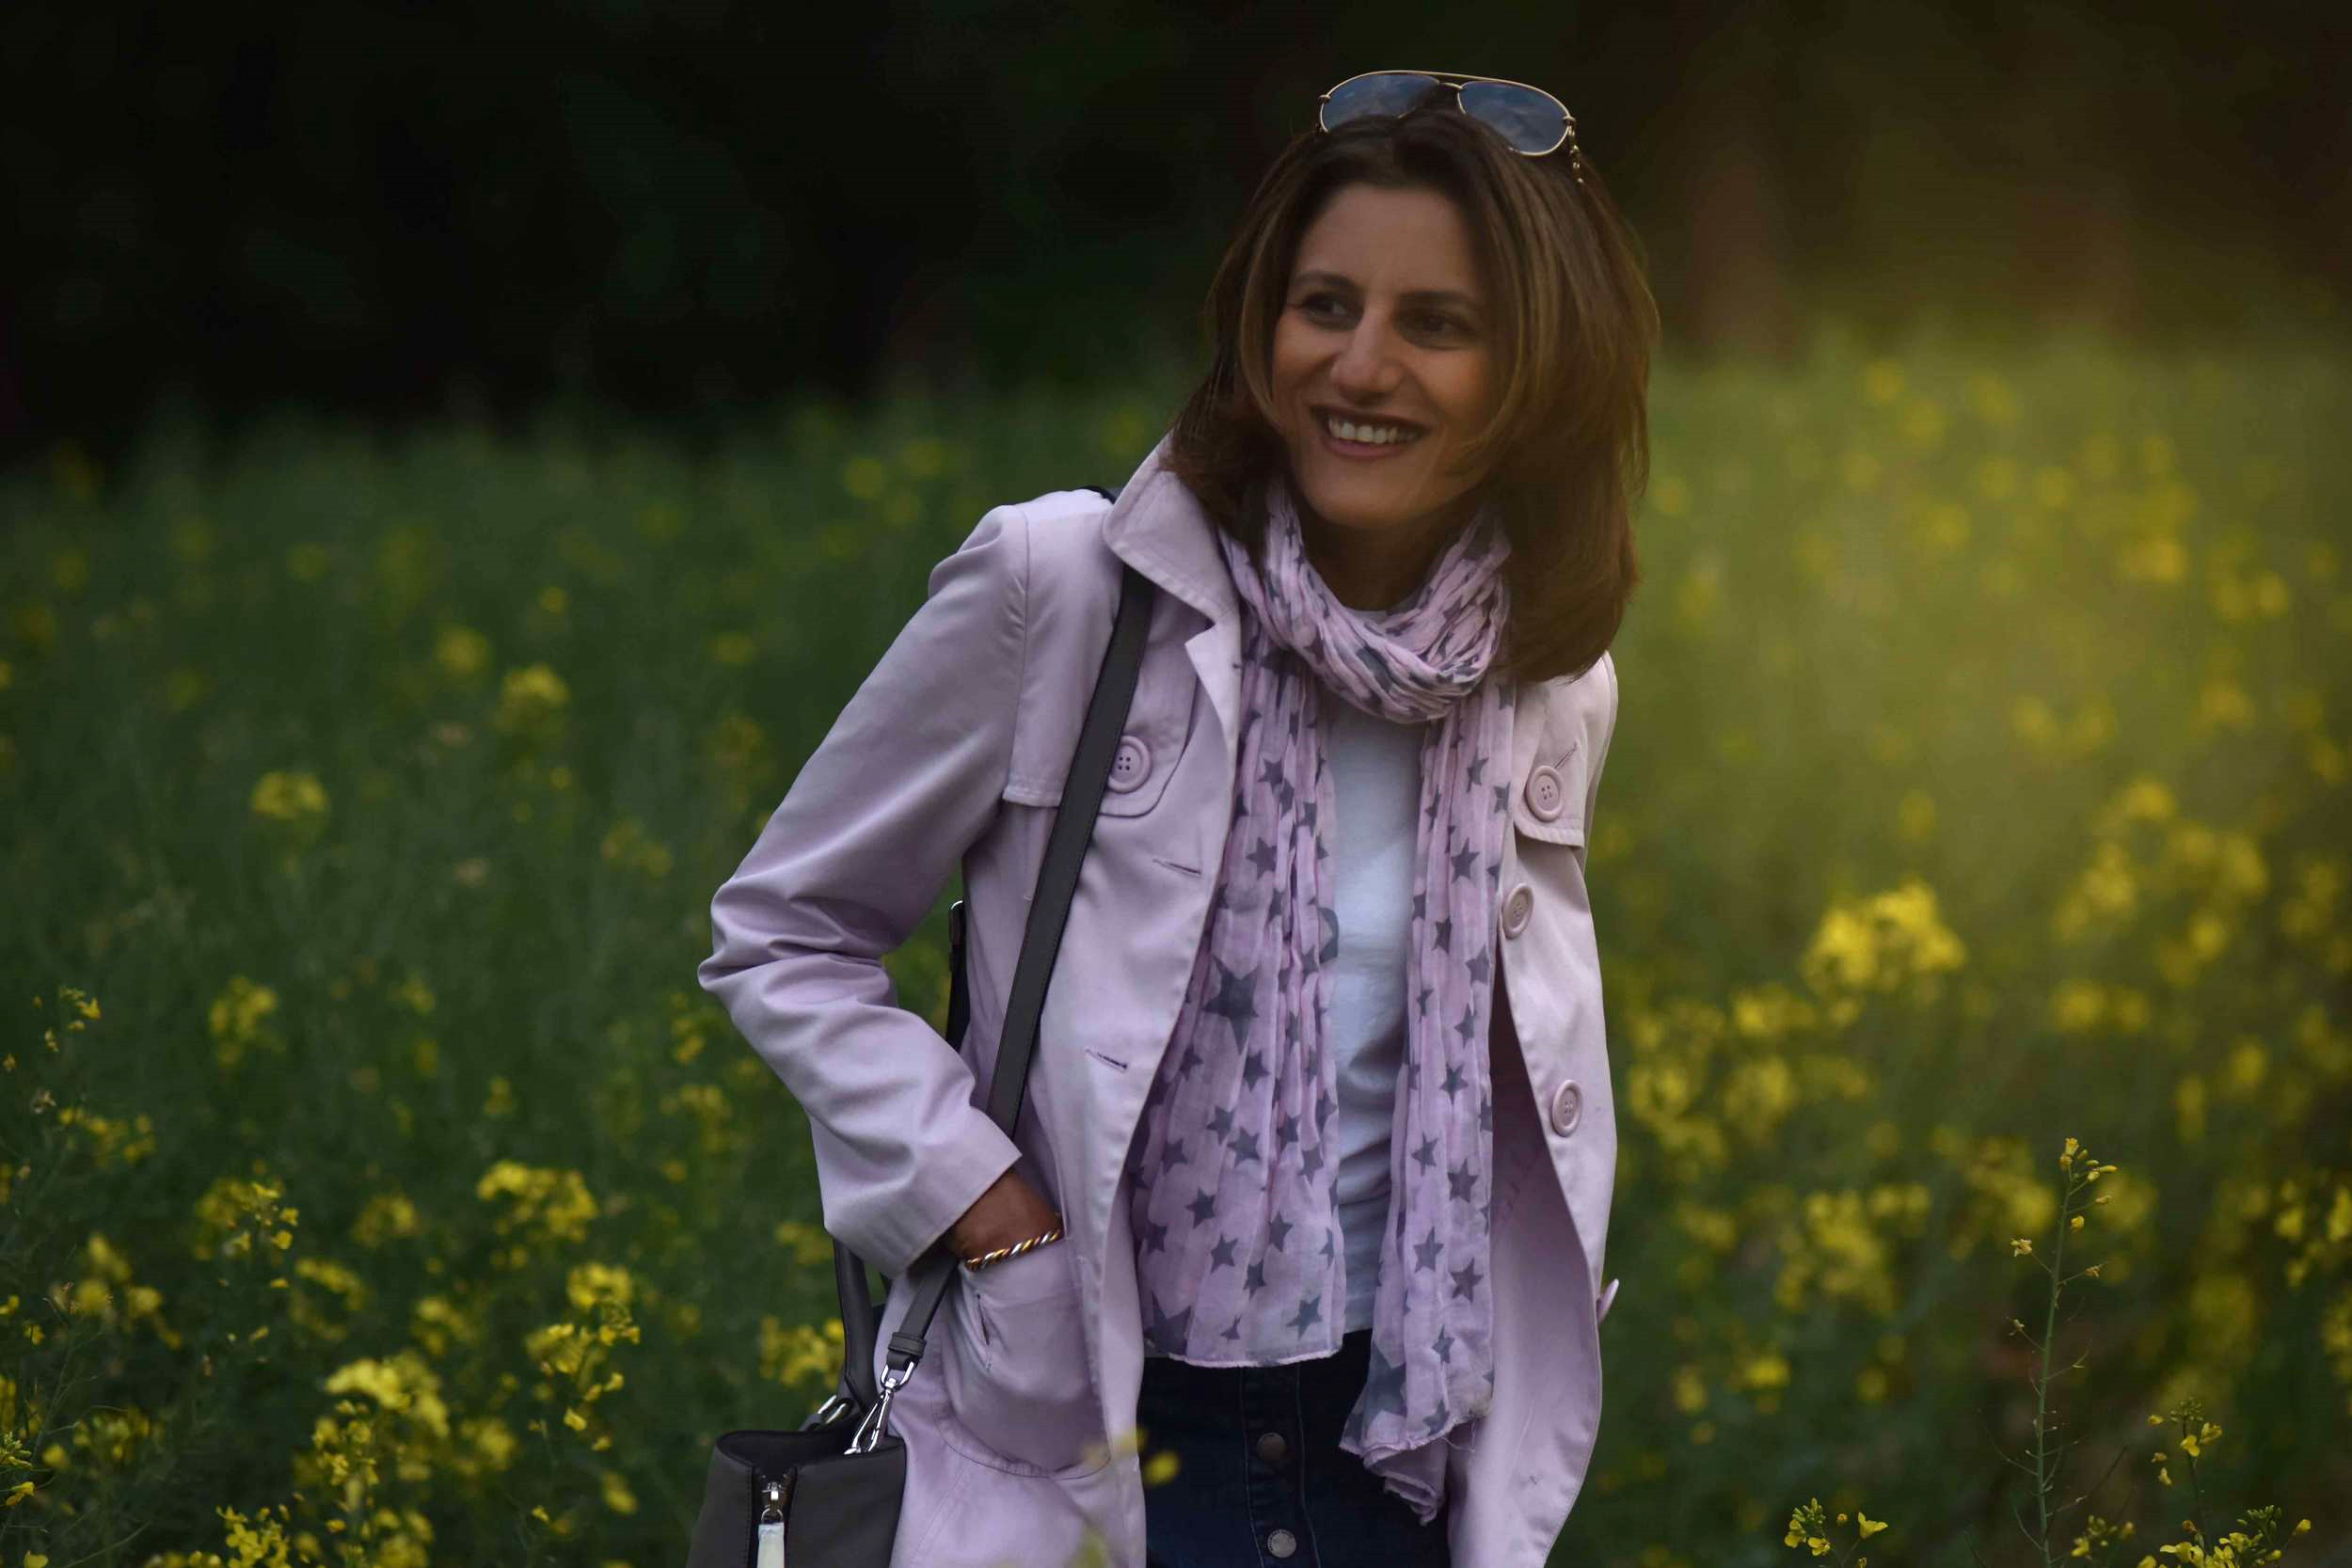 In the fields with flowers, village near Düsseldorf, Germany, pink trench, Ralph Lauren white tee, star scarf, Prada tote, Gucci sunglasses. Photo: Nicola Nolting, Image©sourcingstyle.com